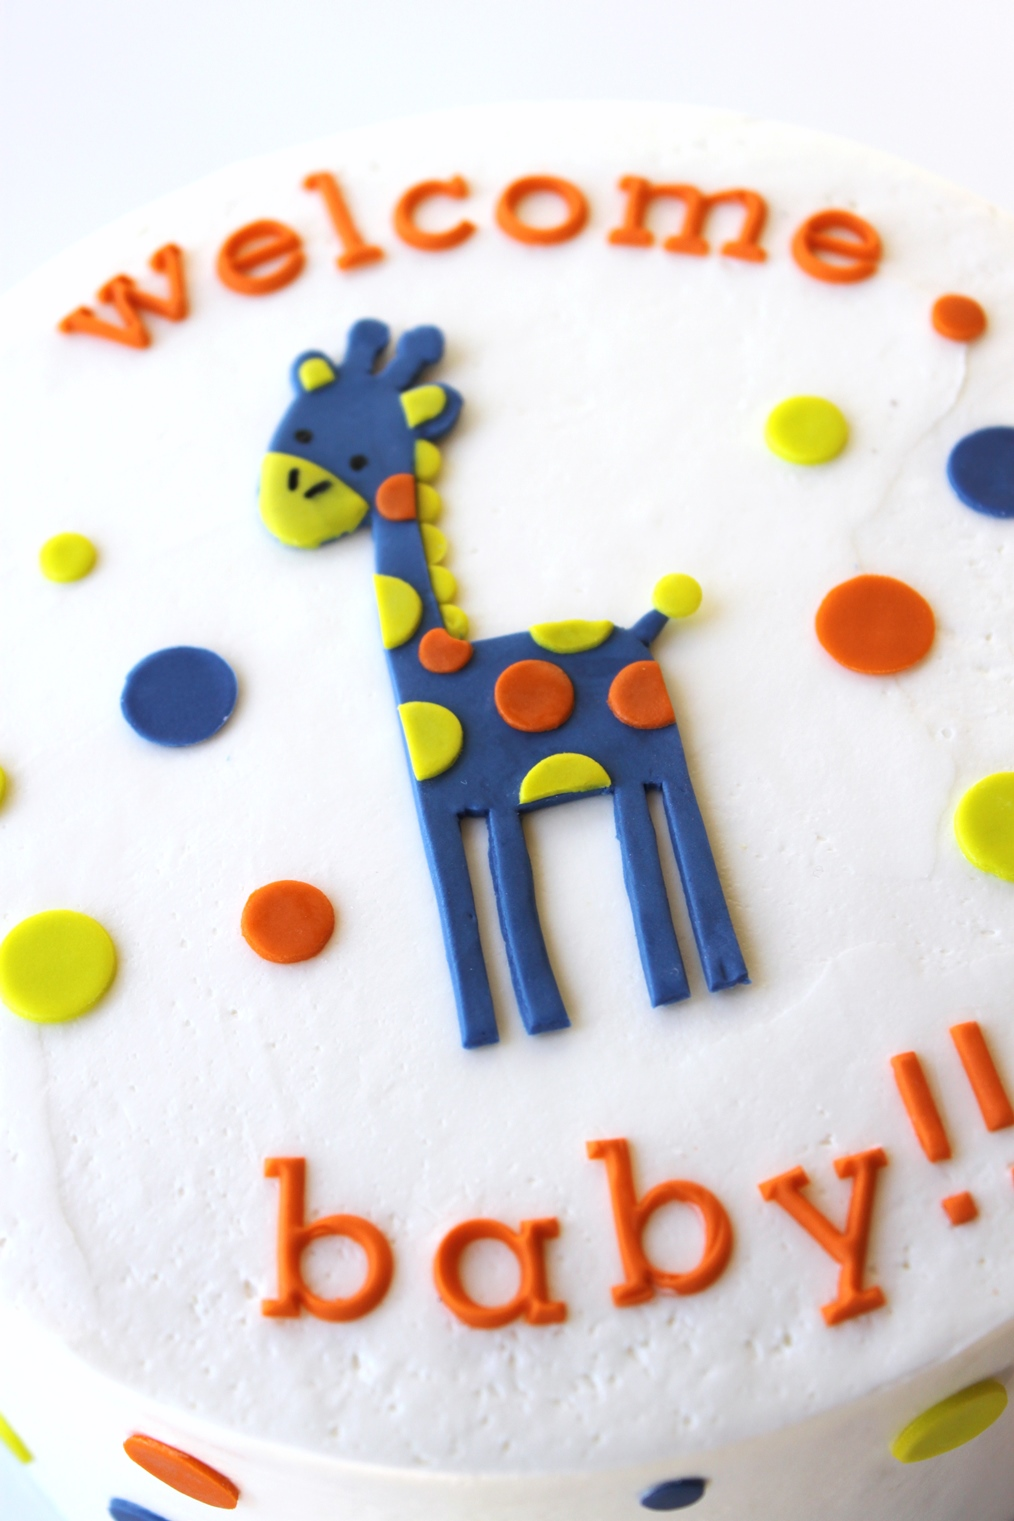 ... baby shower cake giraffe cake minneapolis cake baker twin cities bake